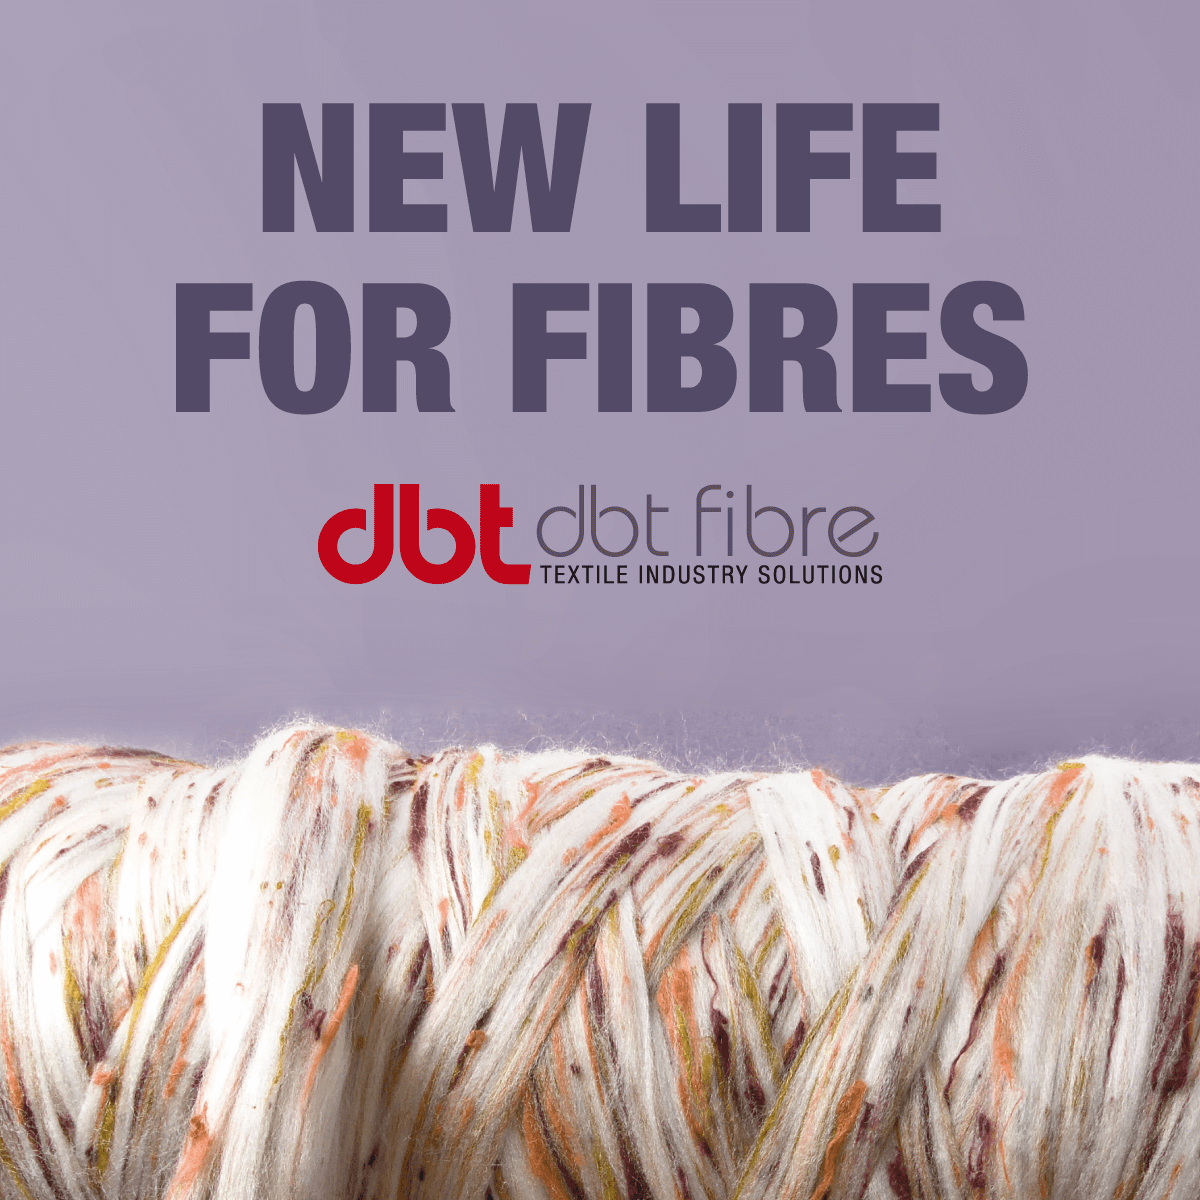 Call for ideas: new life for fibres